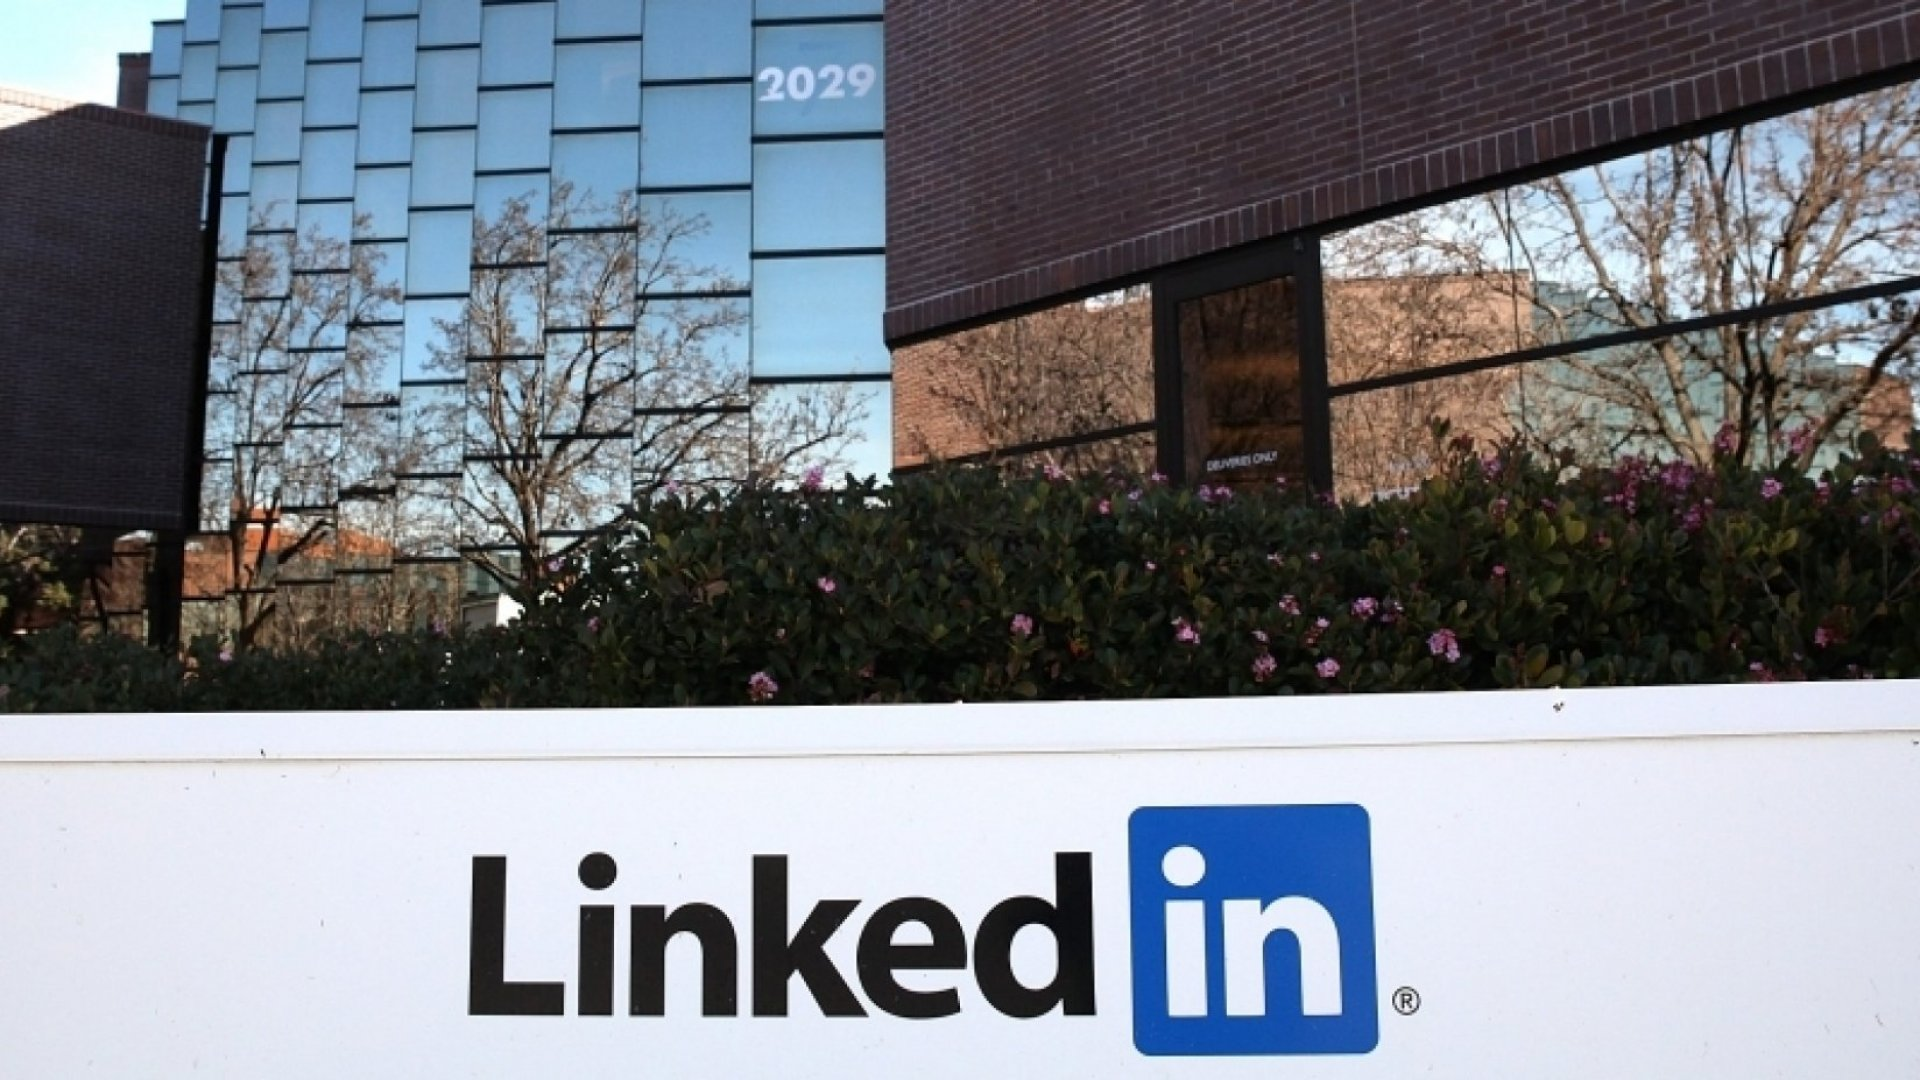 What Microsoft's LinkedIn Acquisition Means for Professionals